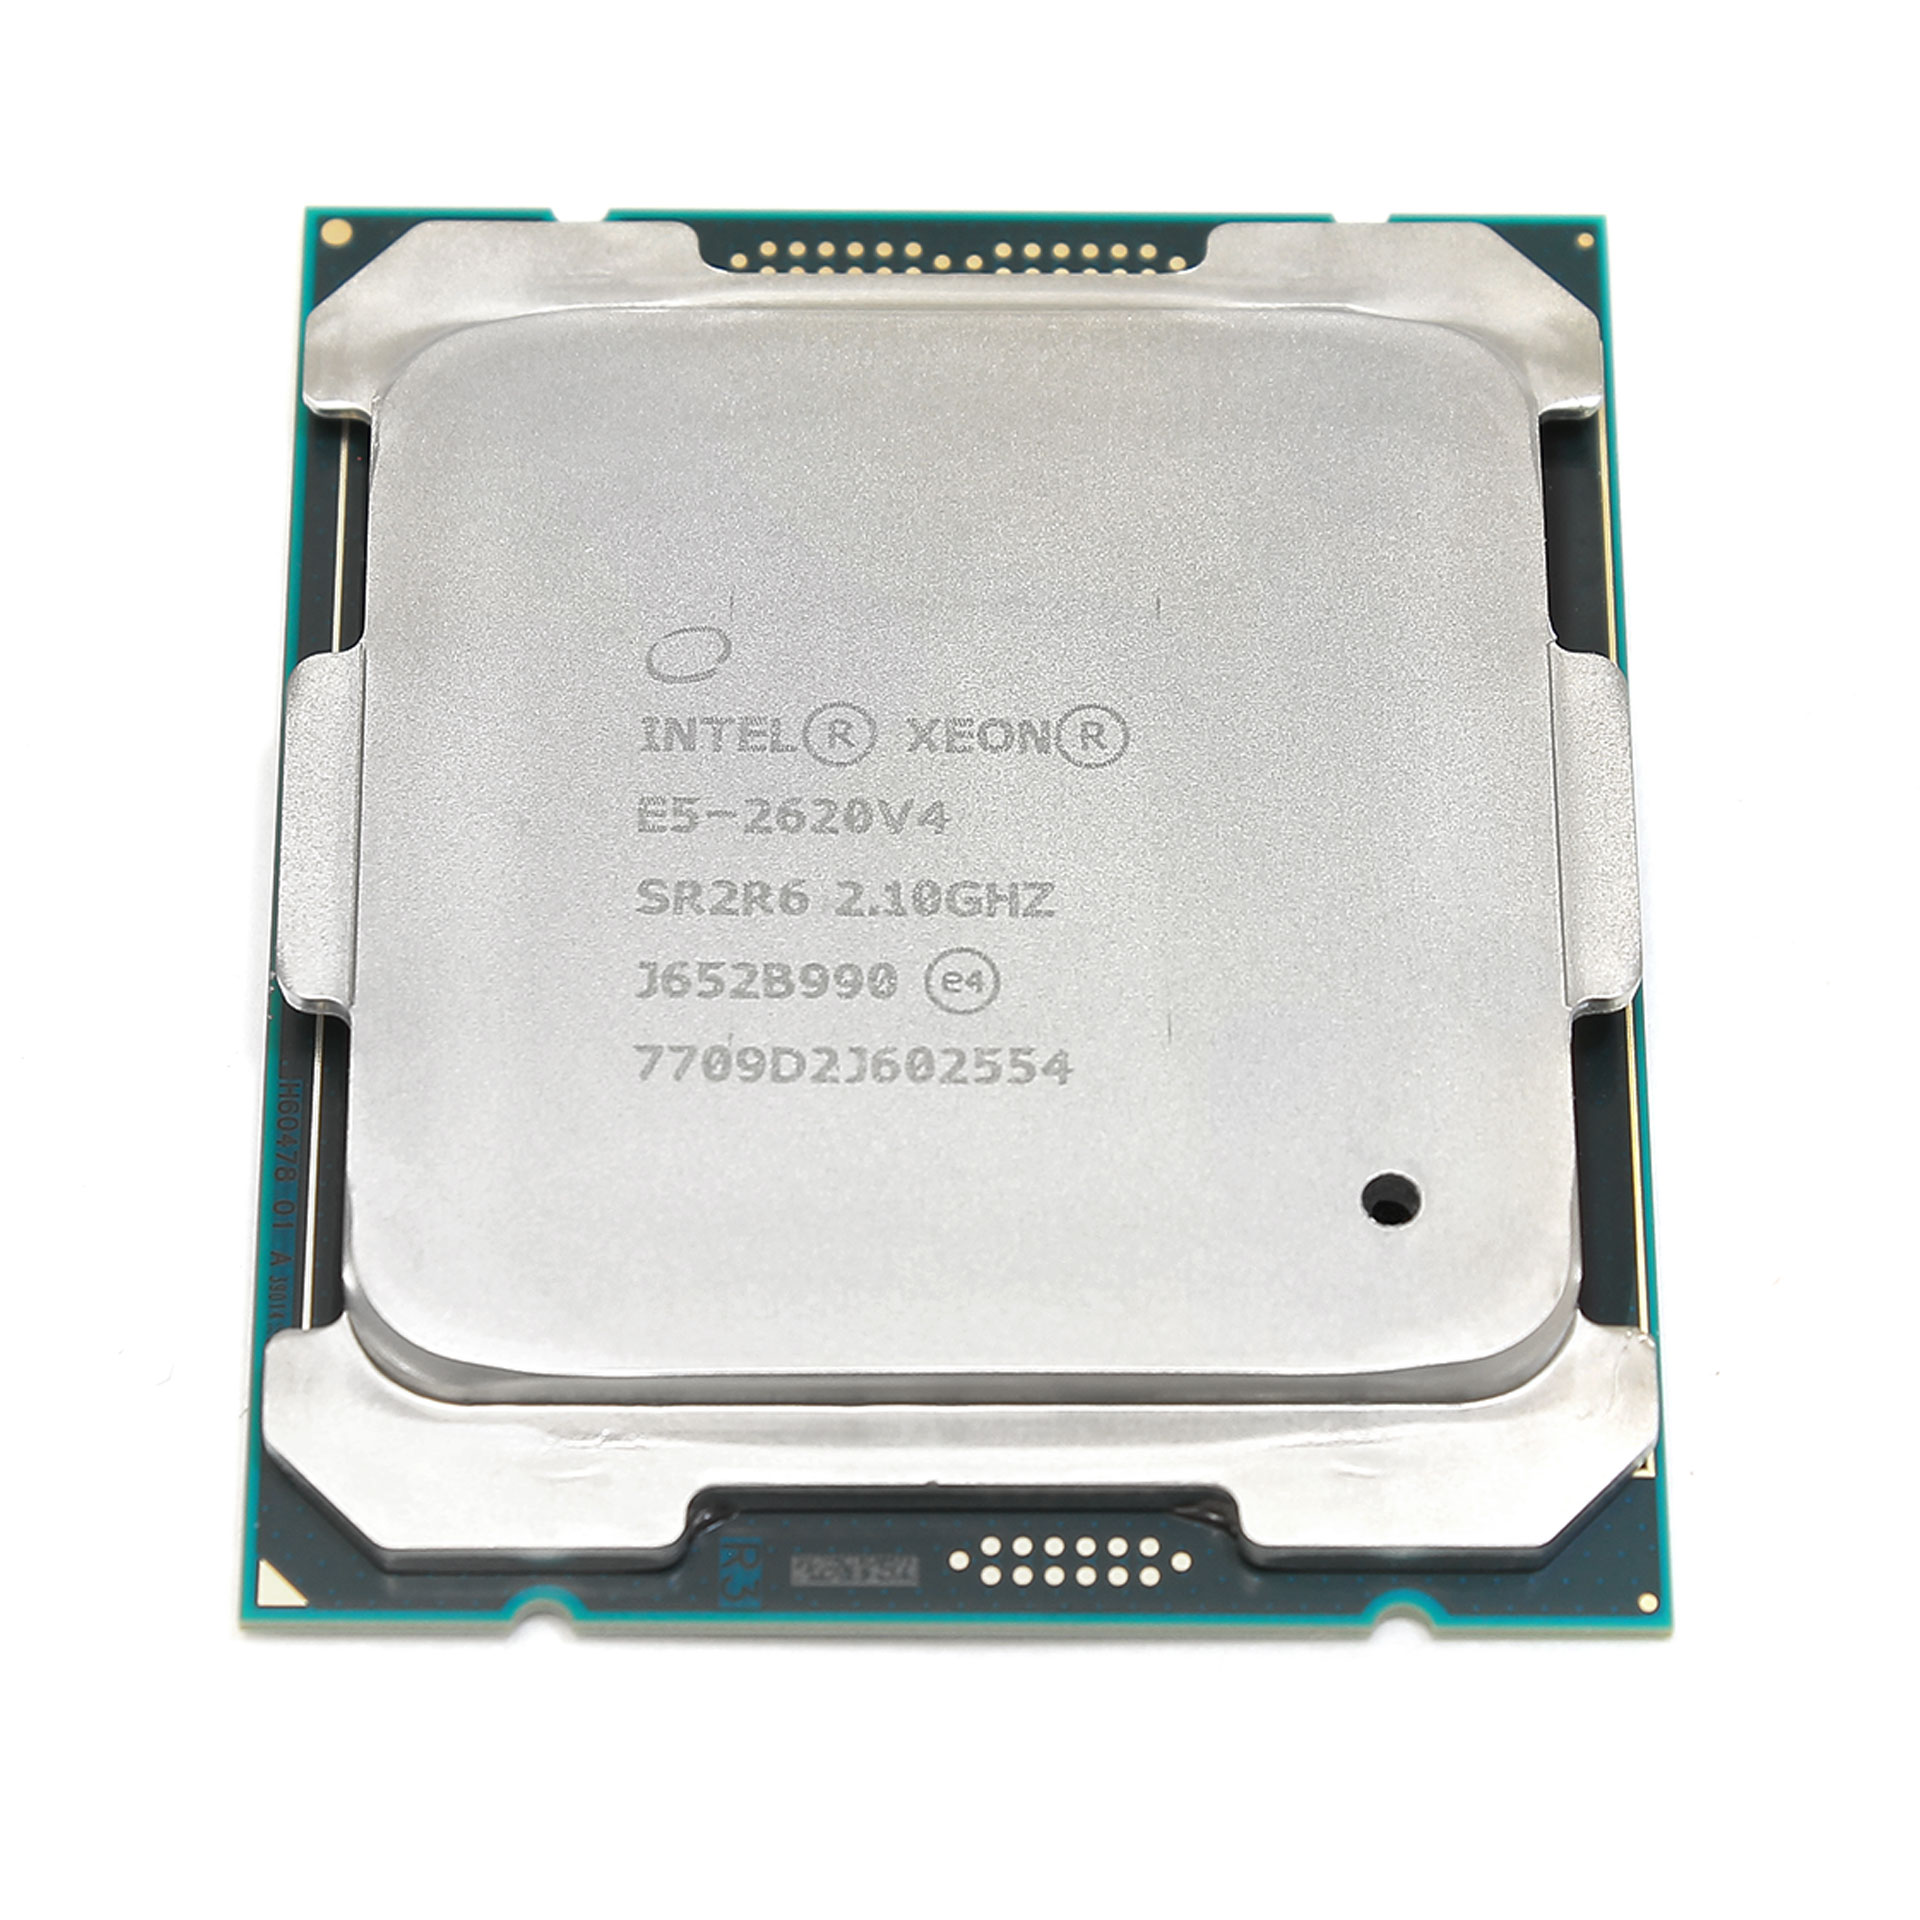 Processor CPU Intel XEON E5-2620 V4 SR2R6 2.1 GHz